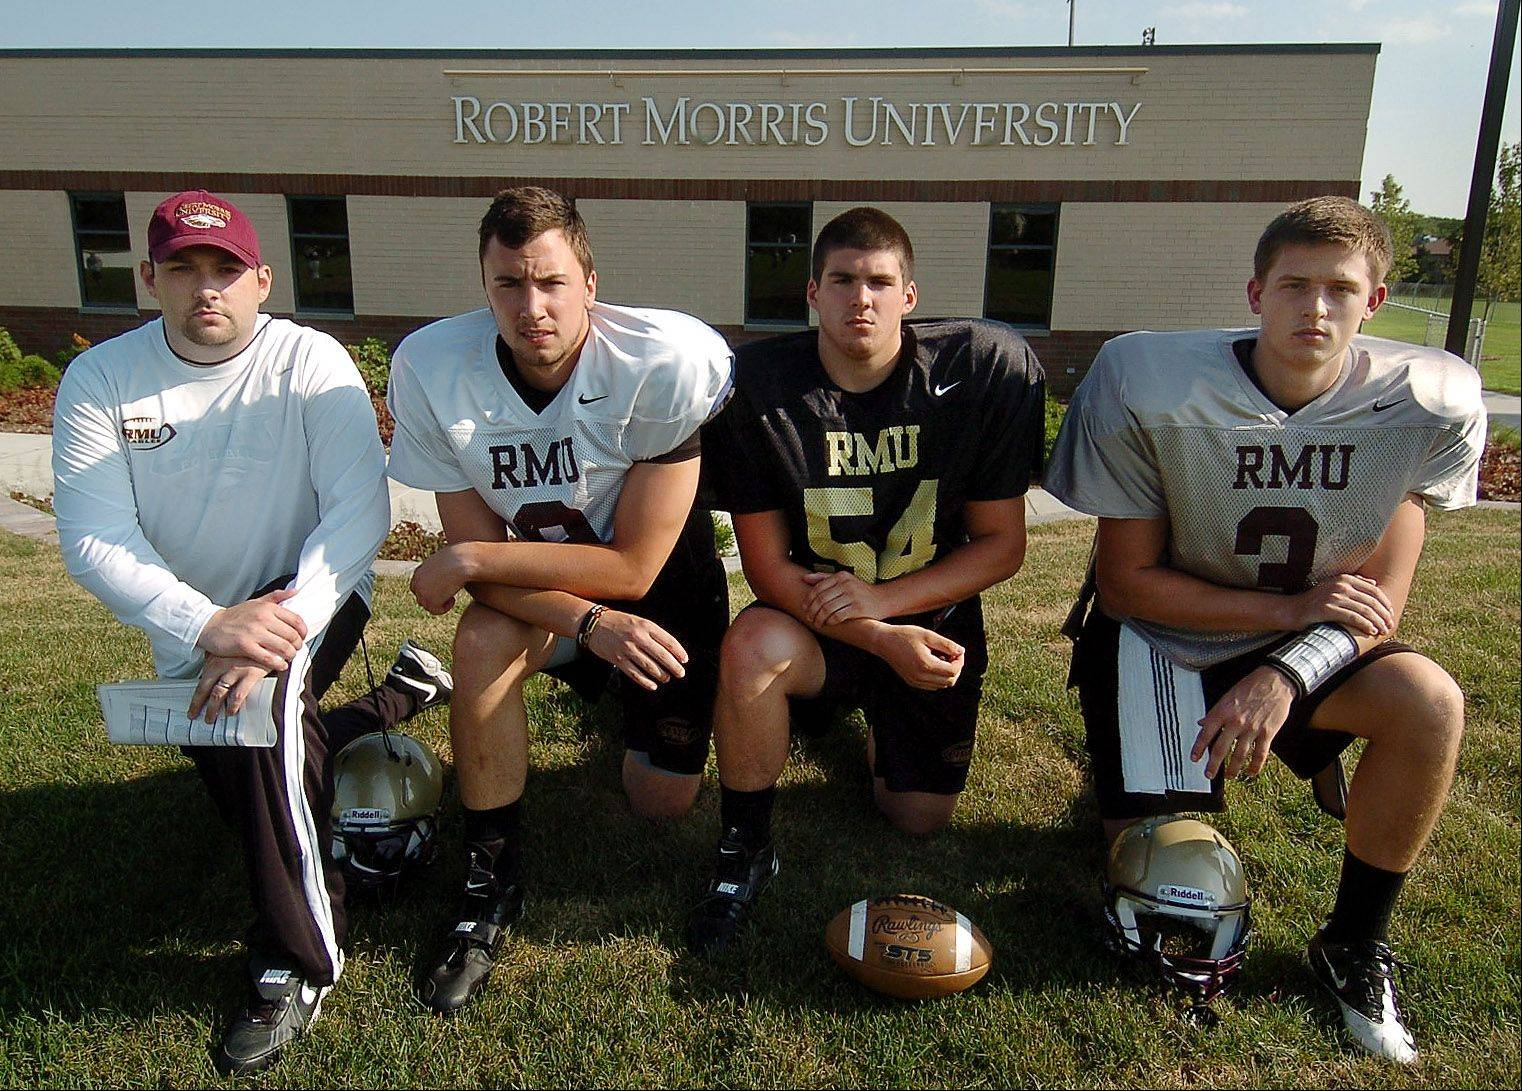 Robert Morris University's inaugural season of football includes, from left, head coach Jared Williamson, tight end Tyler Warden (Glenbard West), linebacker Jason Olson (Hersey) and quarterback Matt Westerkamp (Montini).